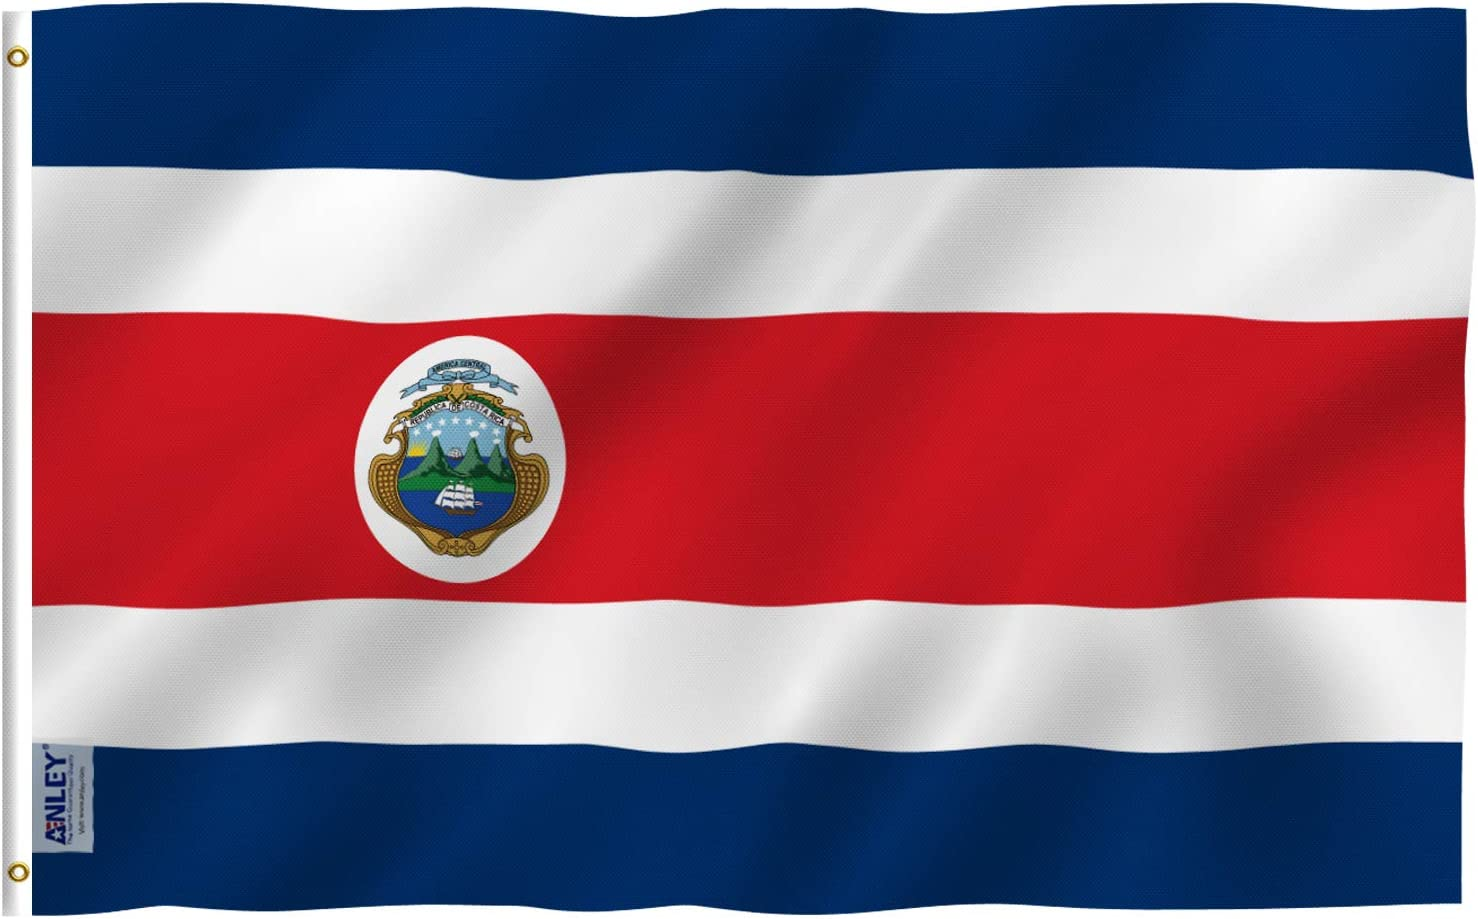 Anley Fly Breeze 3x5 Feet Costa Rica Flag - Vivid Color and Fade Proof - Canvas Header and Double Stitched - The Republic of Costa Rica Flags Polyester with Brass Grommets 3 X 5 Ft